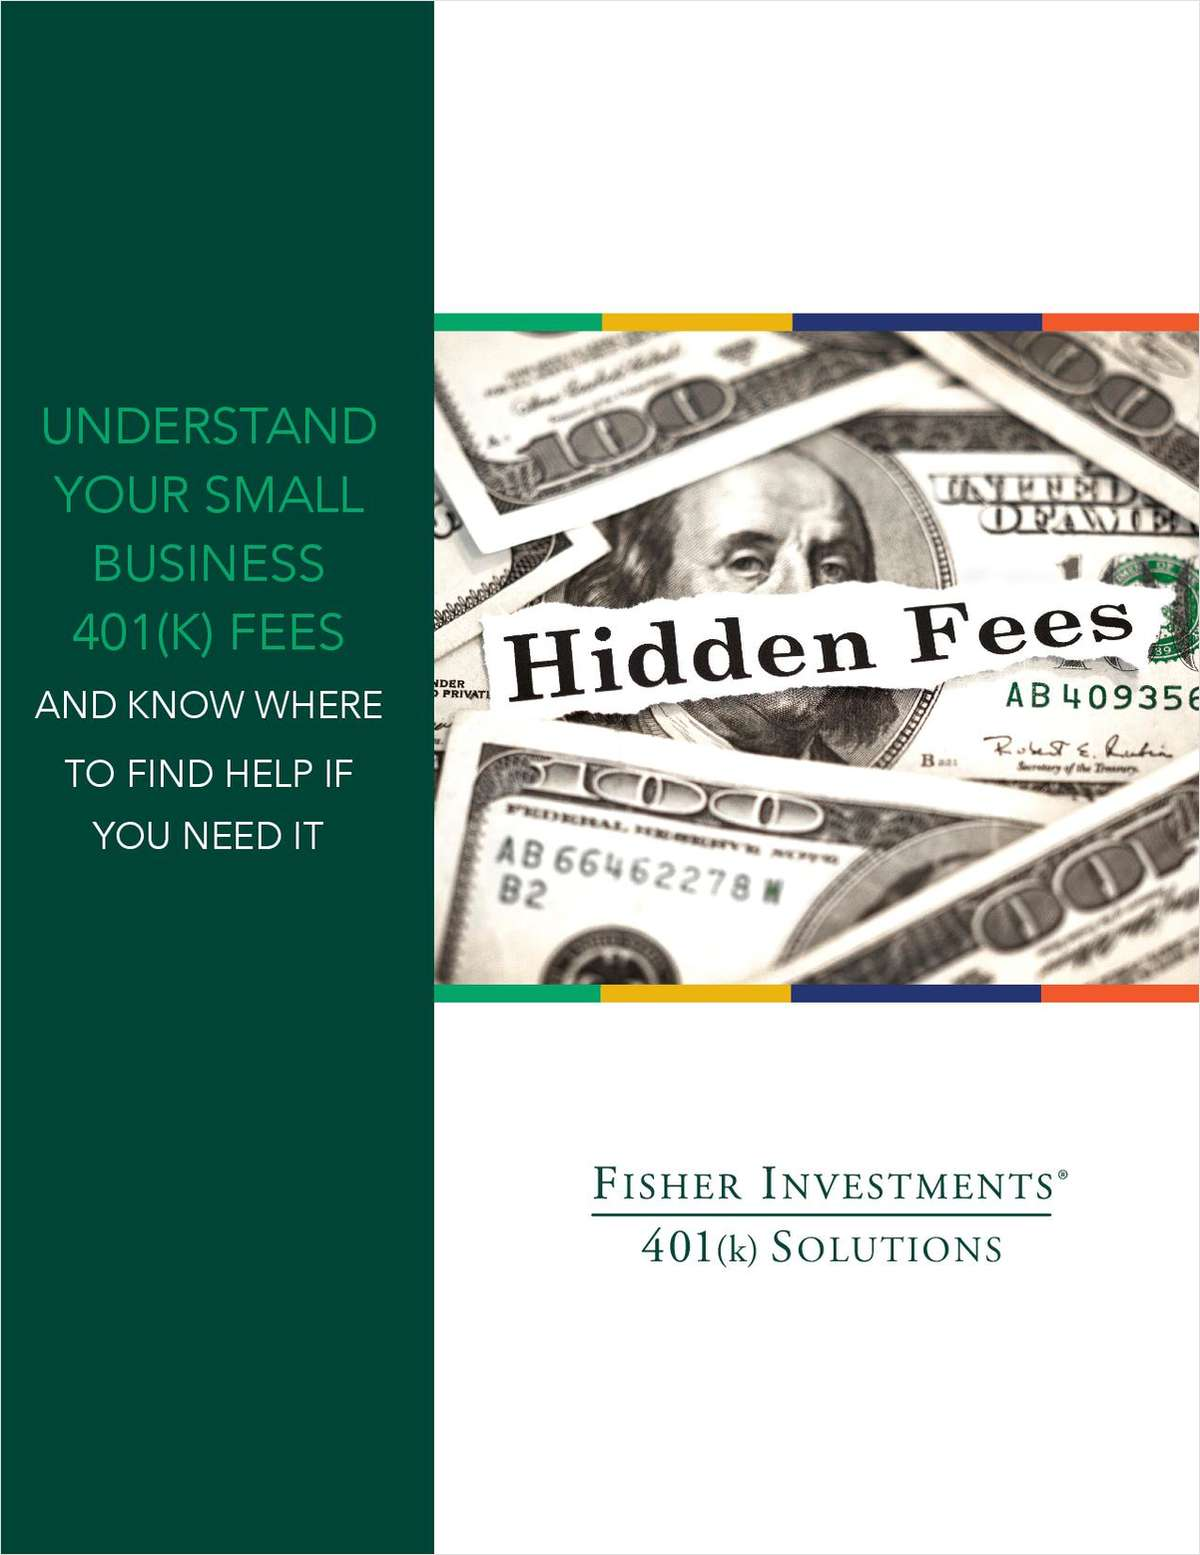 Understand Your Small Business 401(k) Fees